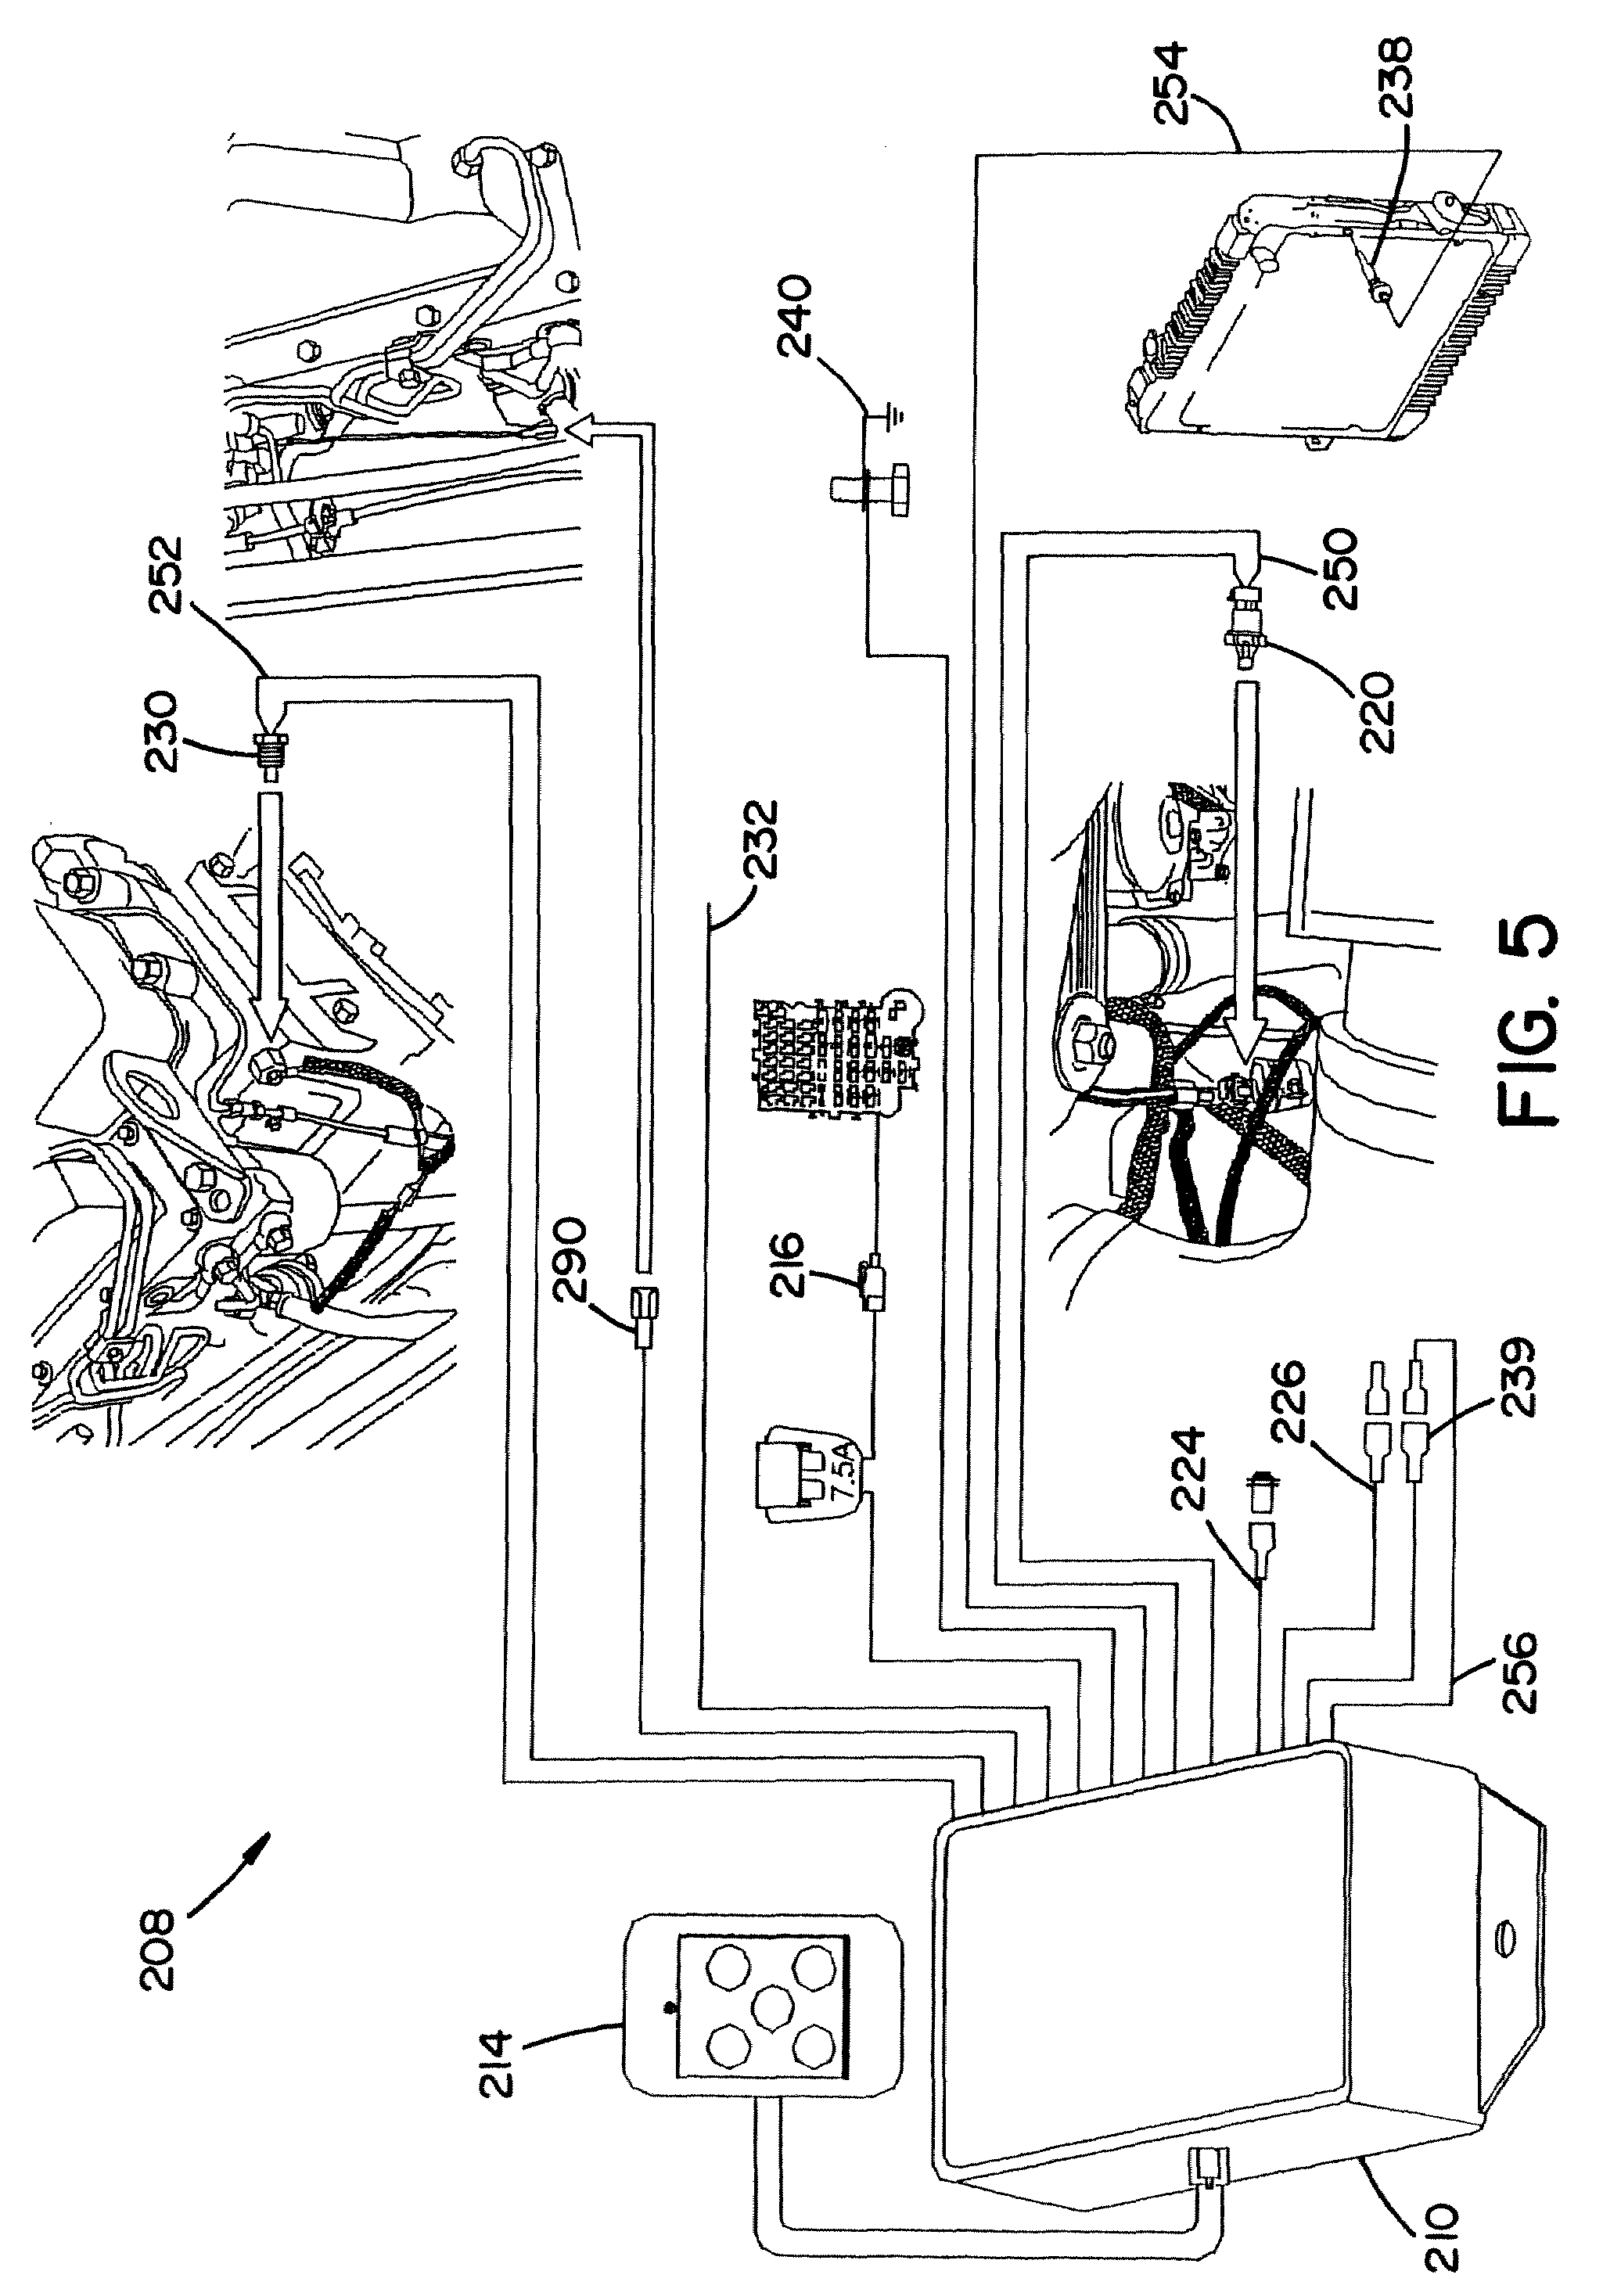 Patent Us7542843 Engine Protection System Google Patents 3 1l Fuel Flow Diagram Drawing